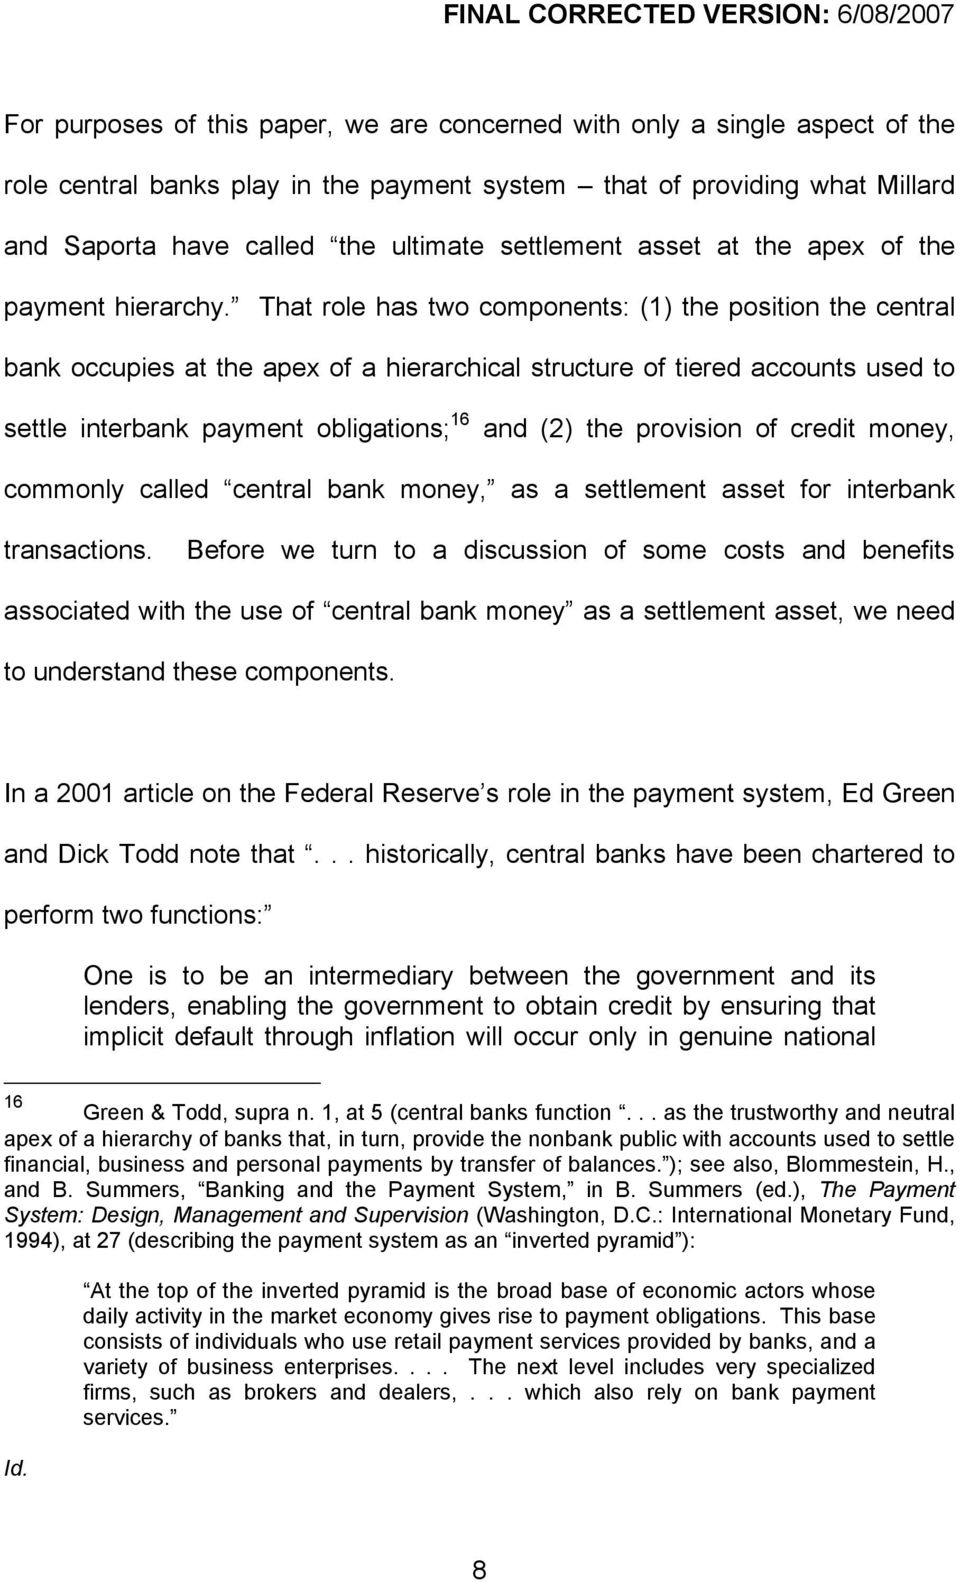 That role has two components: (1) the position the central bank occupies at the apex of a hierarchical structure of tiered accounts used to settle interbank payment obligations; 16 and (2) the